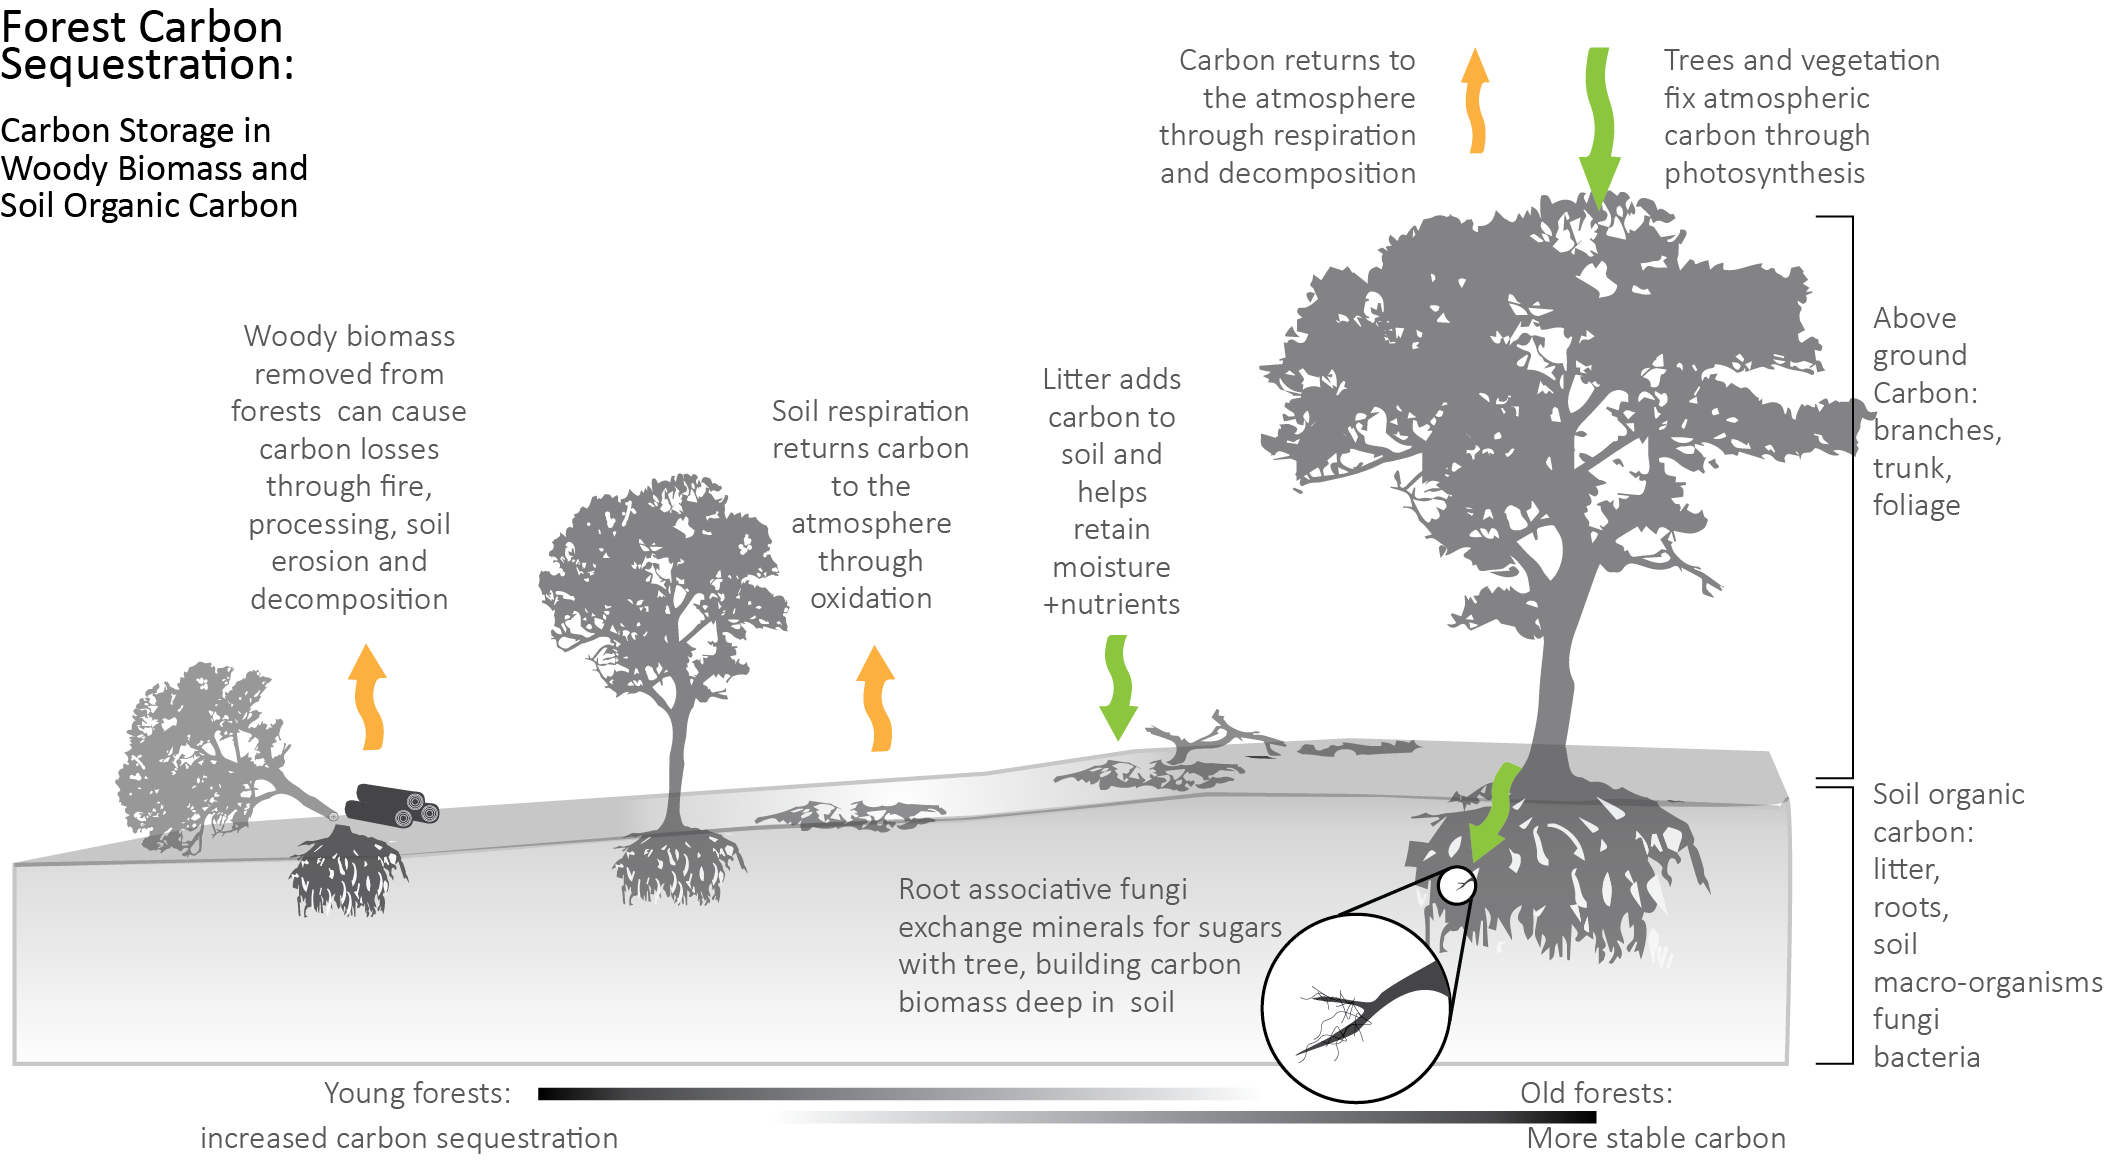 diagram showing how carbon is stored in forest biomass and returned to the atmosphere through fire, harvesting, etc.